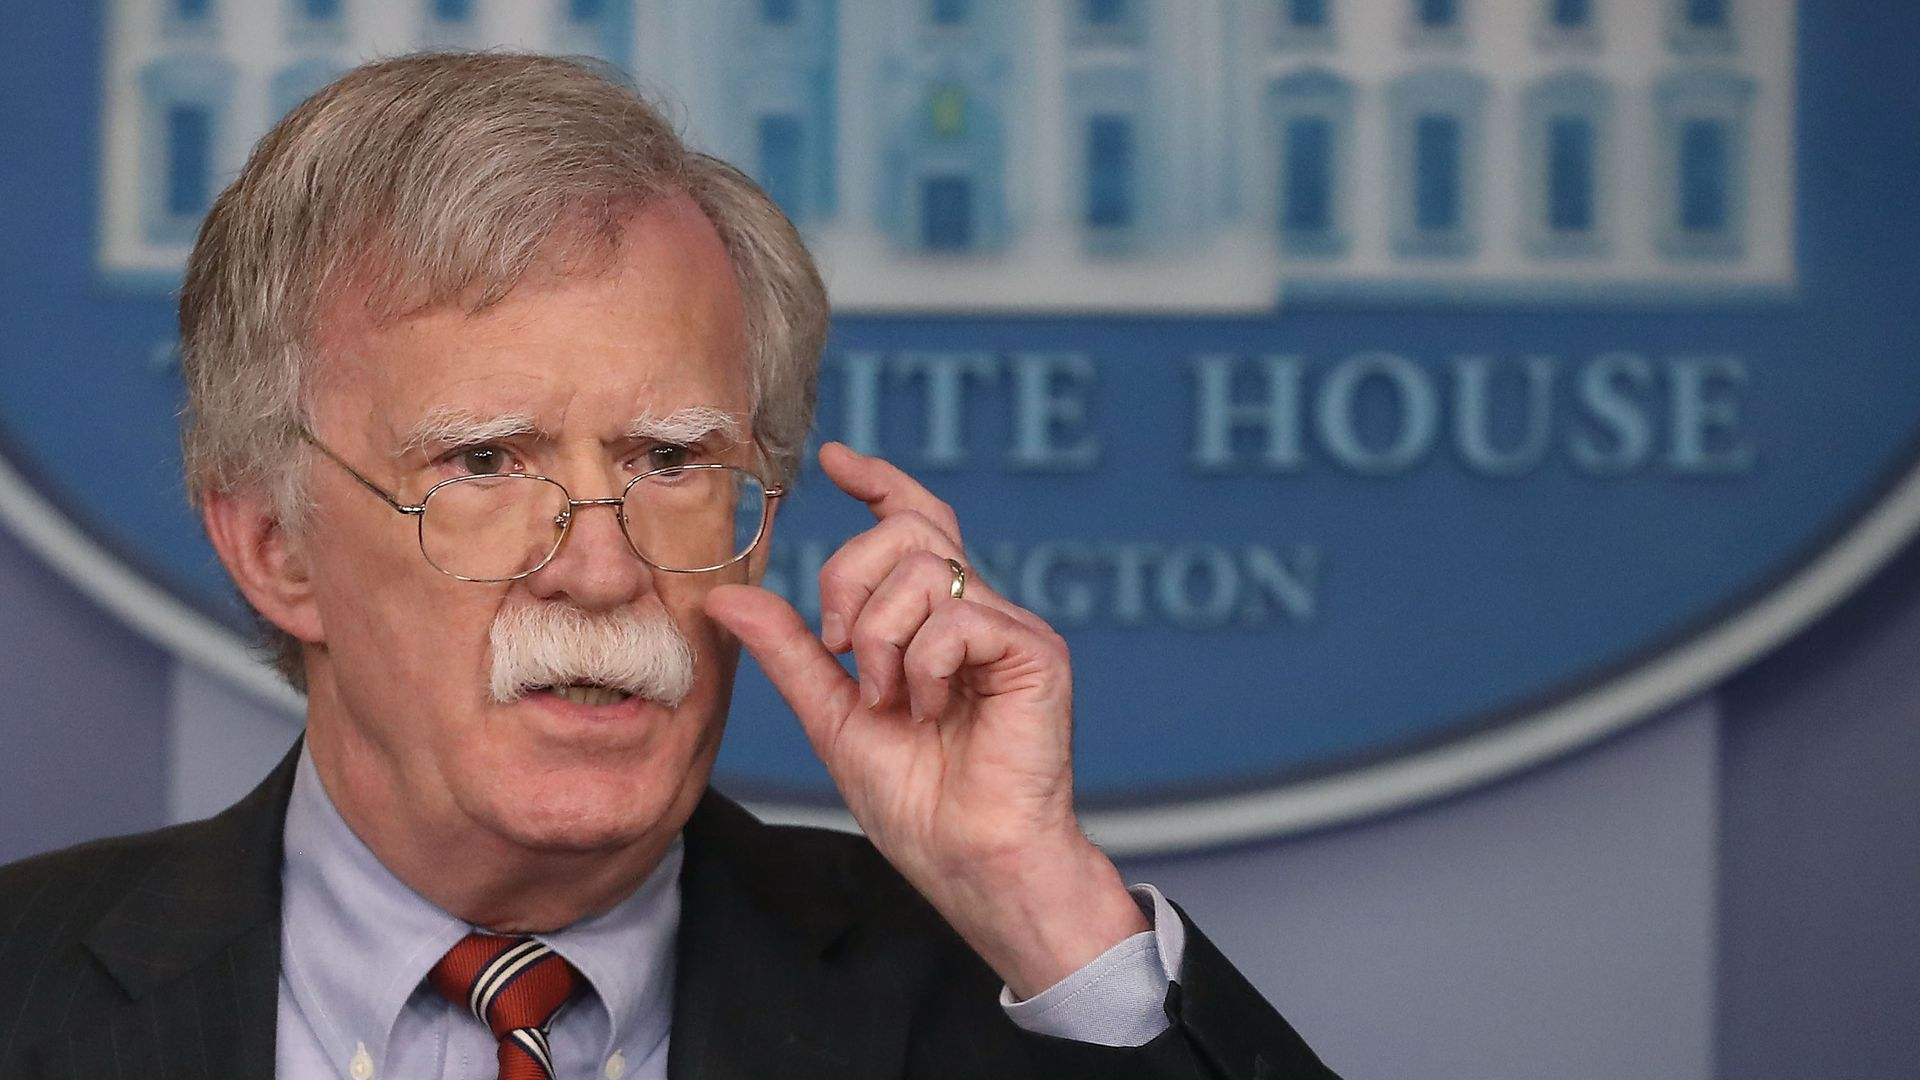 John Bolton at the White House, with his hand near his glasses